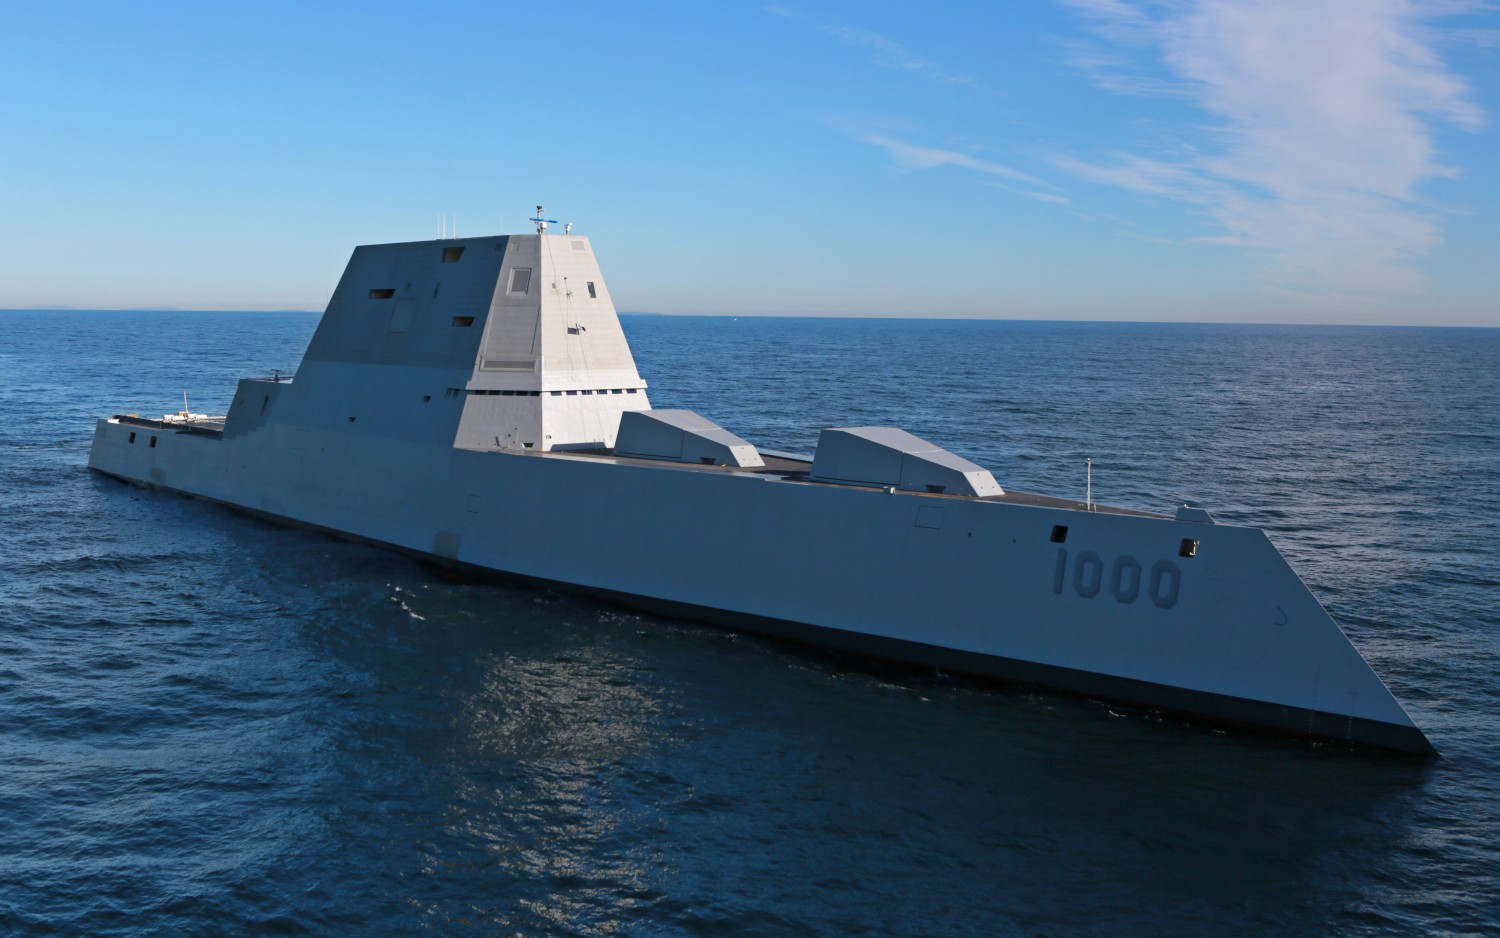 USS Zumwalt image credit: General Dynamics Bath Iron Works CC-BY-SA-2.0